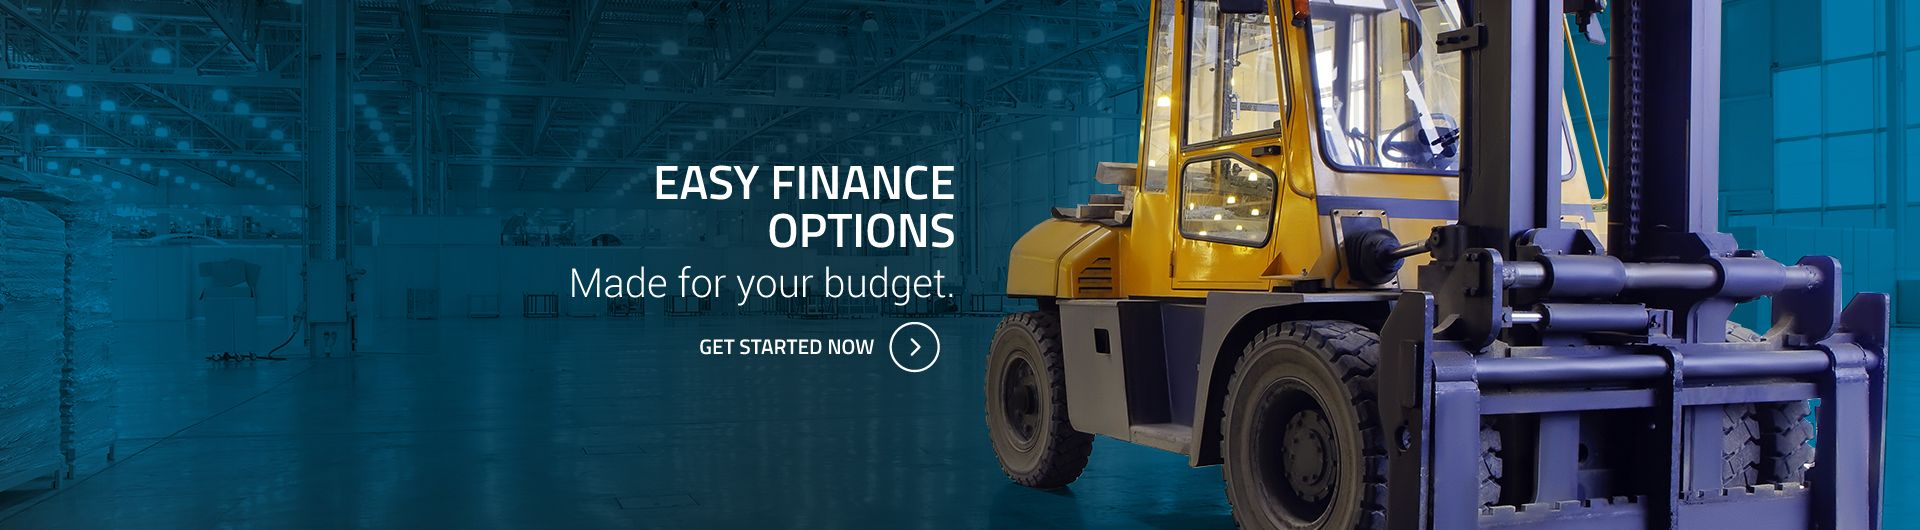 Formidable Forklifts - Financing Available